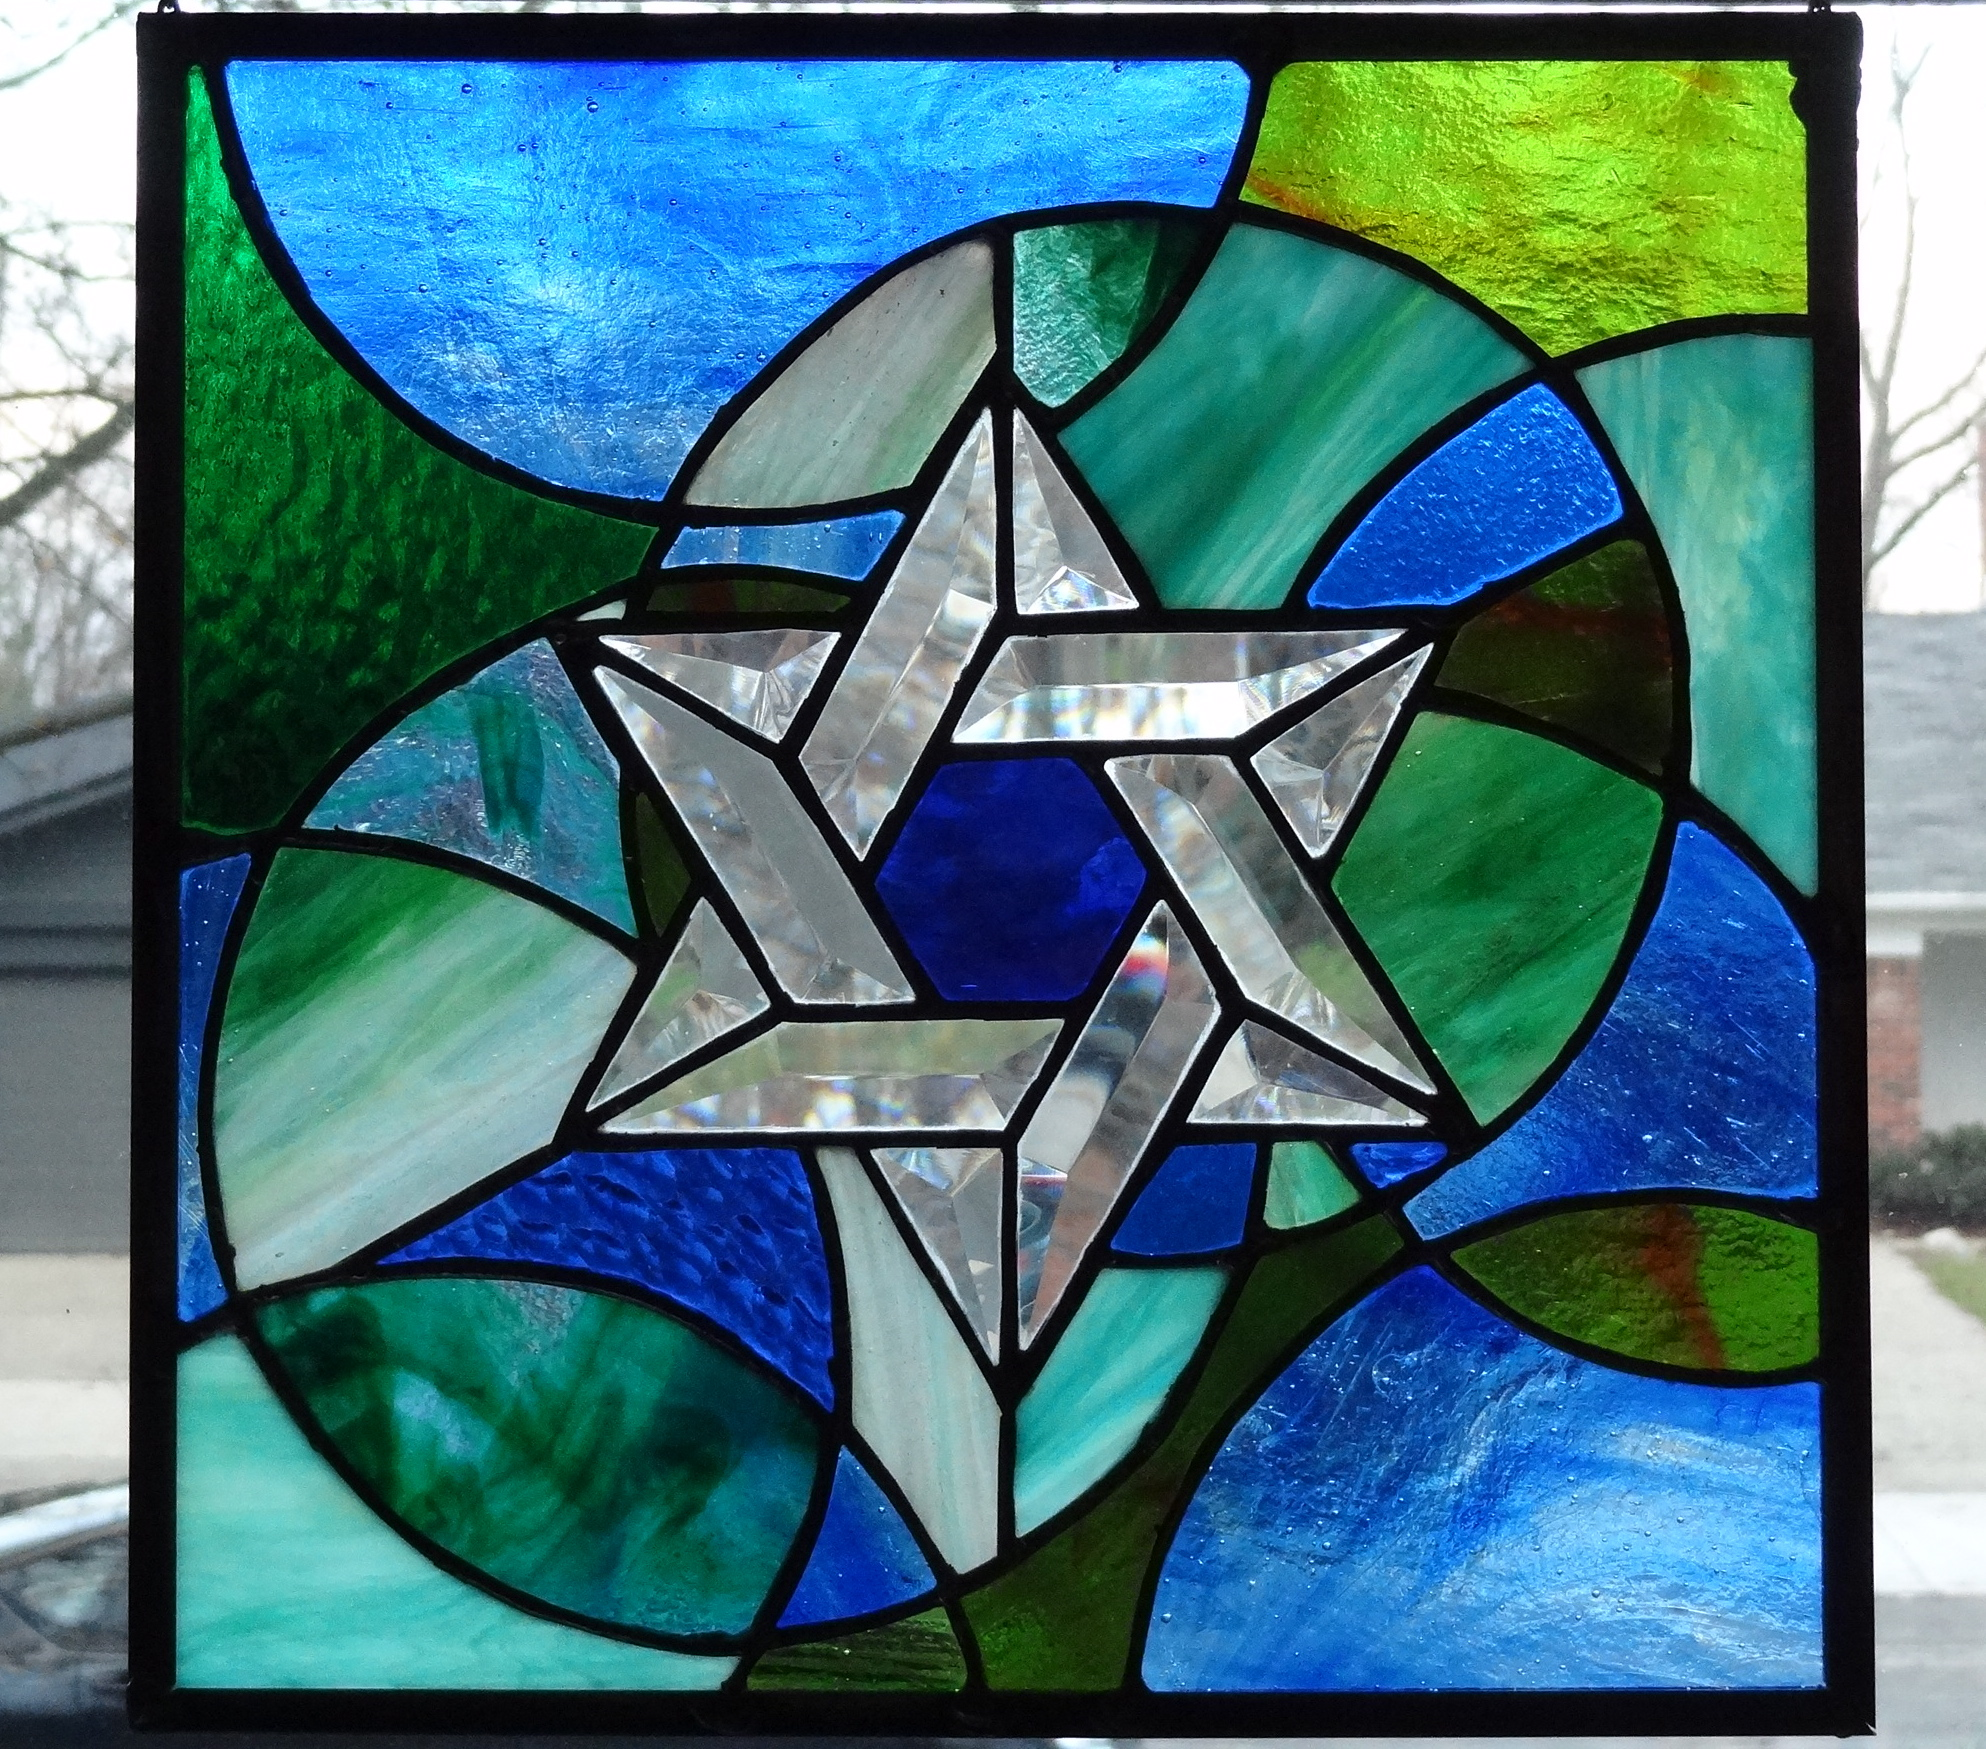 Magain David (Star of David) in Beveled and Stained Glass